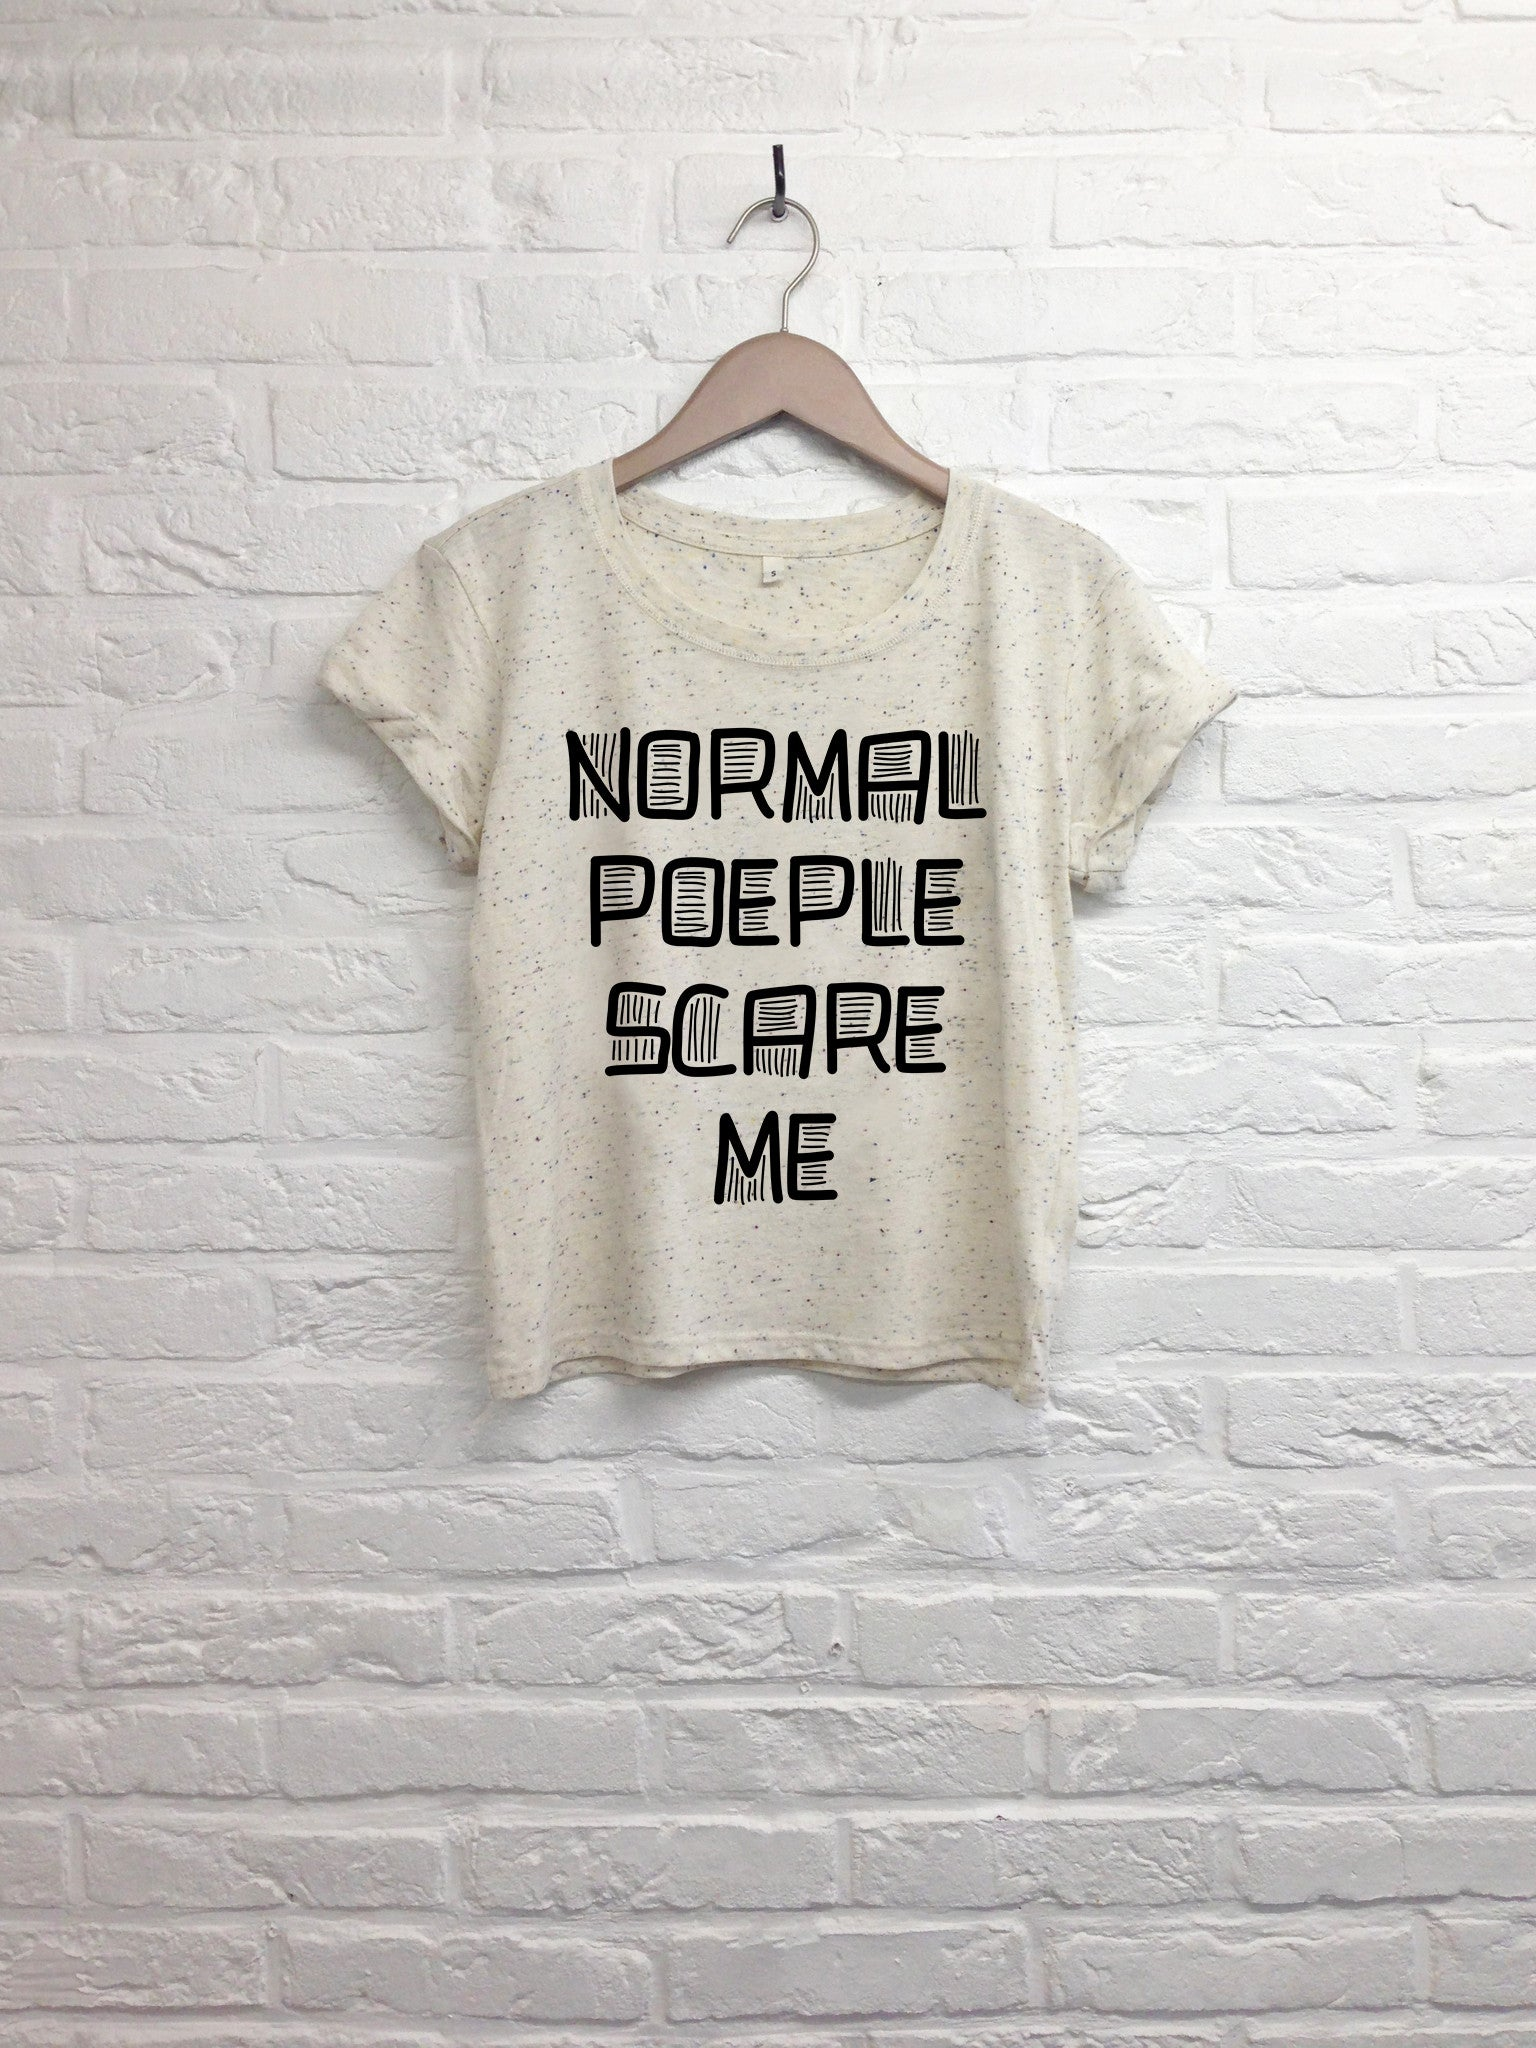 Normal people scary me - Crop Top Cream-T shirt-Atelier Amelot